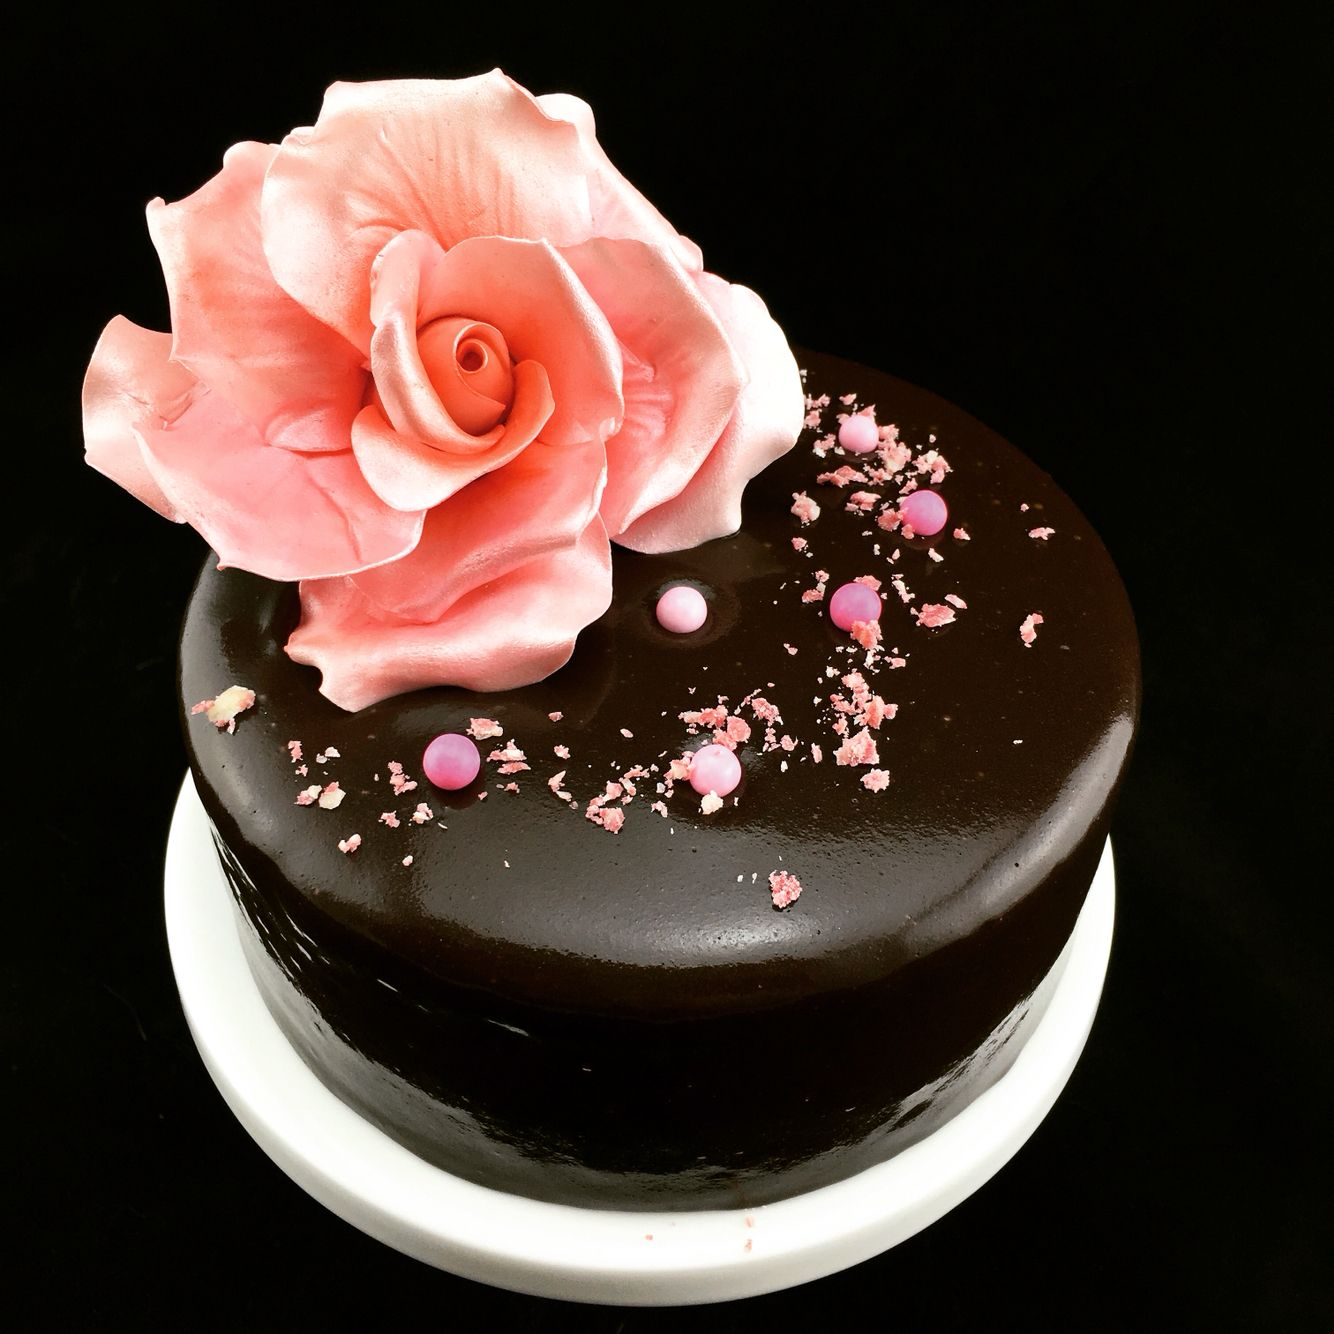 Sugar Rose Cake Design : Elegant chocolate mirror glaze cake with pink sugar rose ...